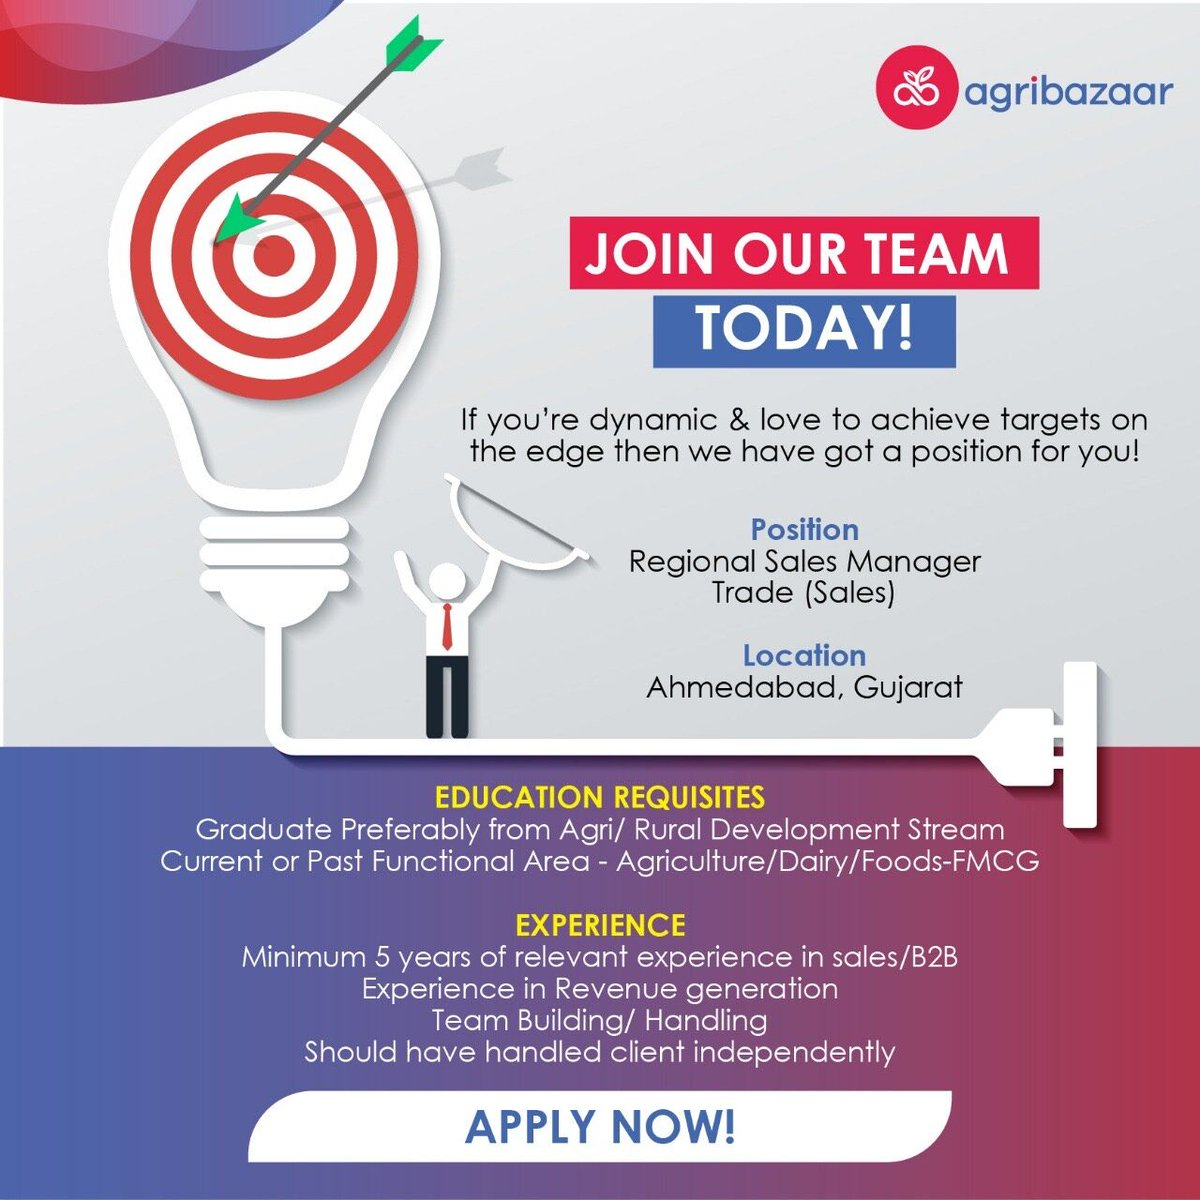 We are Hiring for Regional Sales manager -Trade in Ahmedabad & Gujarat. Apply Now : https://t.co/I3eellQJrN #agribazaar #hiringsales #salesmanager #trade #agribusiness #recruitment https://t.co/9JCmKfkySS